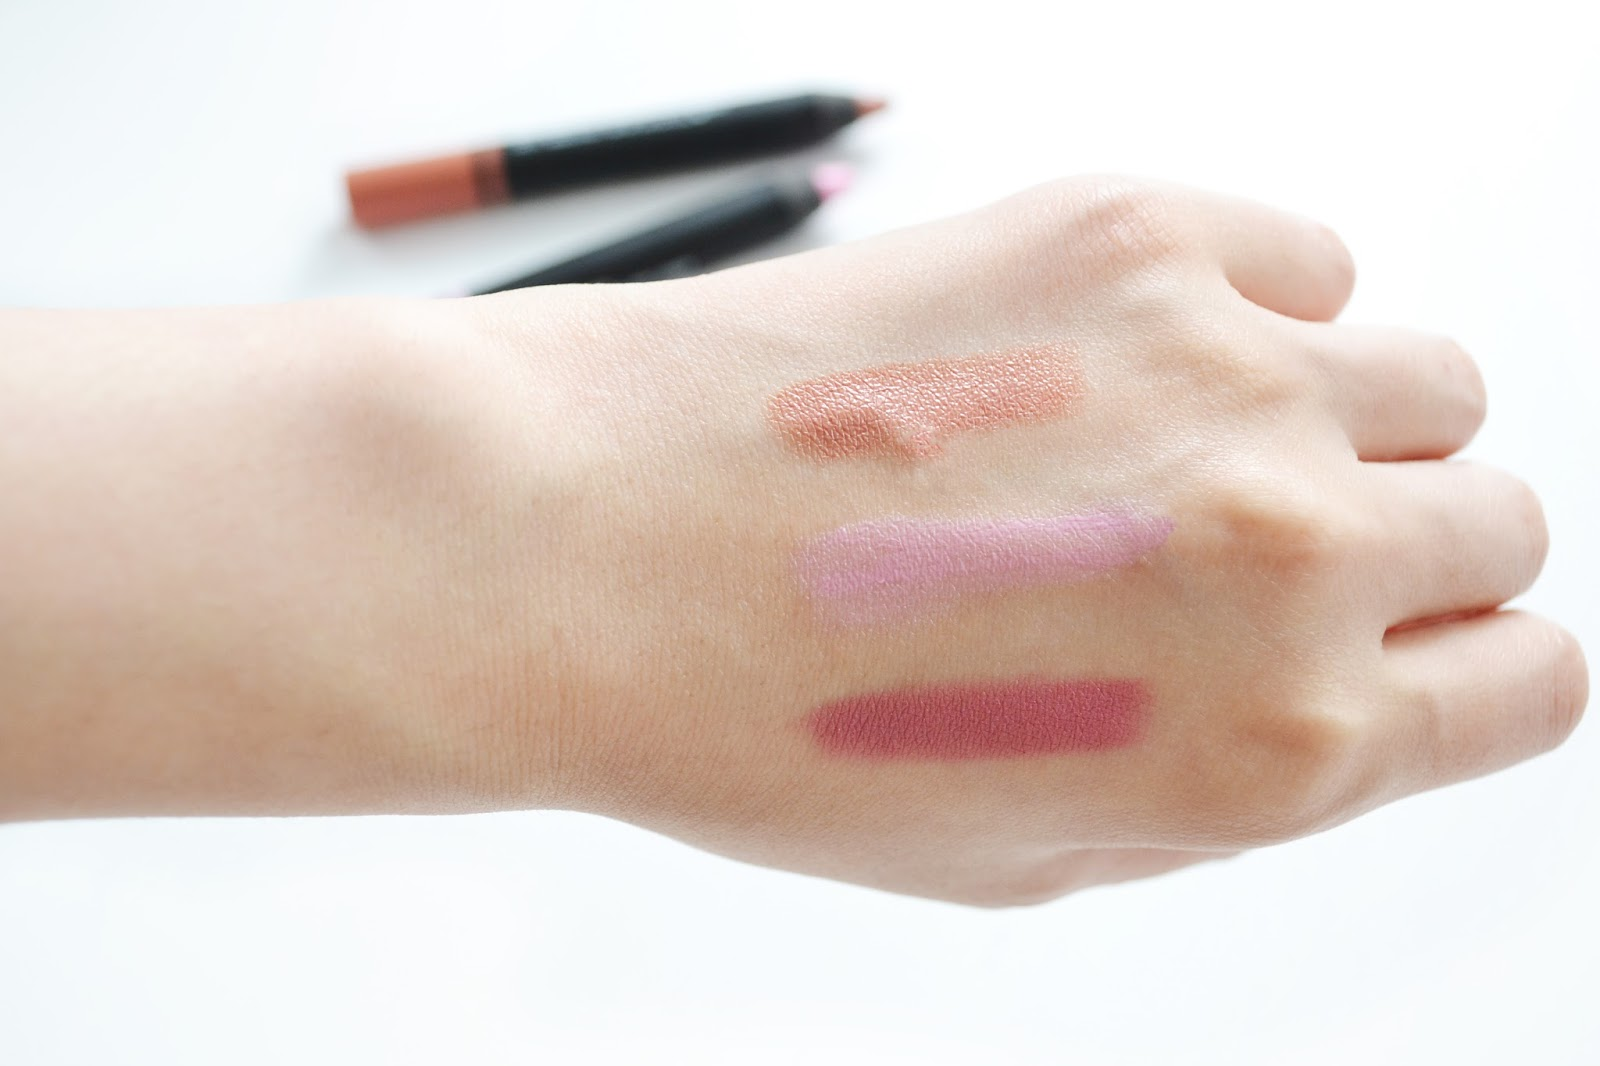 NARS lipstick swatches in biscayne park, stourhead and sex machine